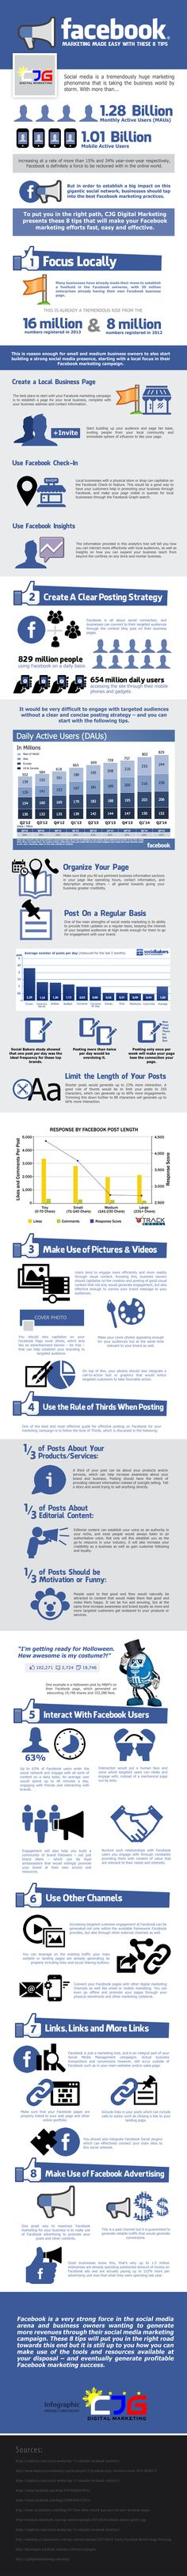 The following infographic will show you 8 actionable tips on how to do Facebook marketing…